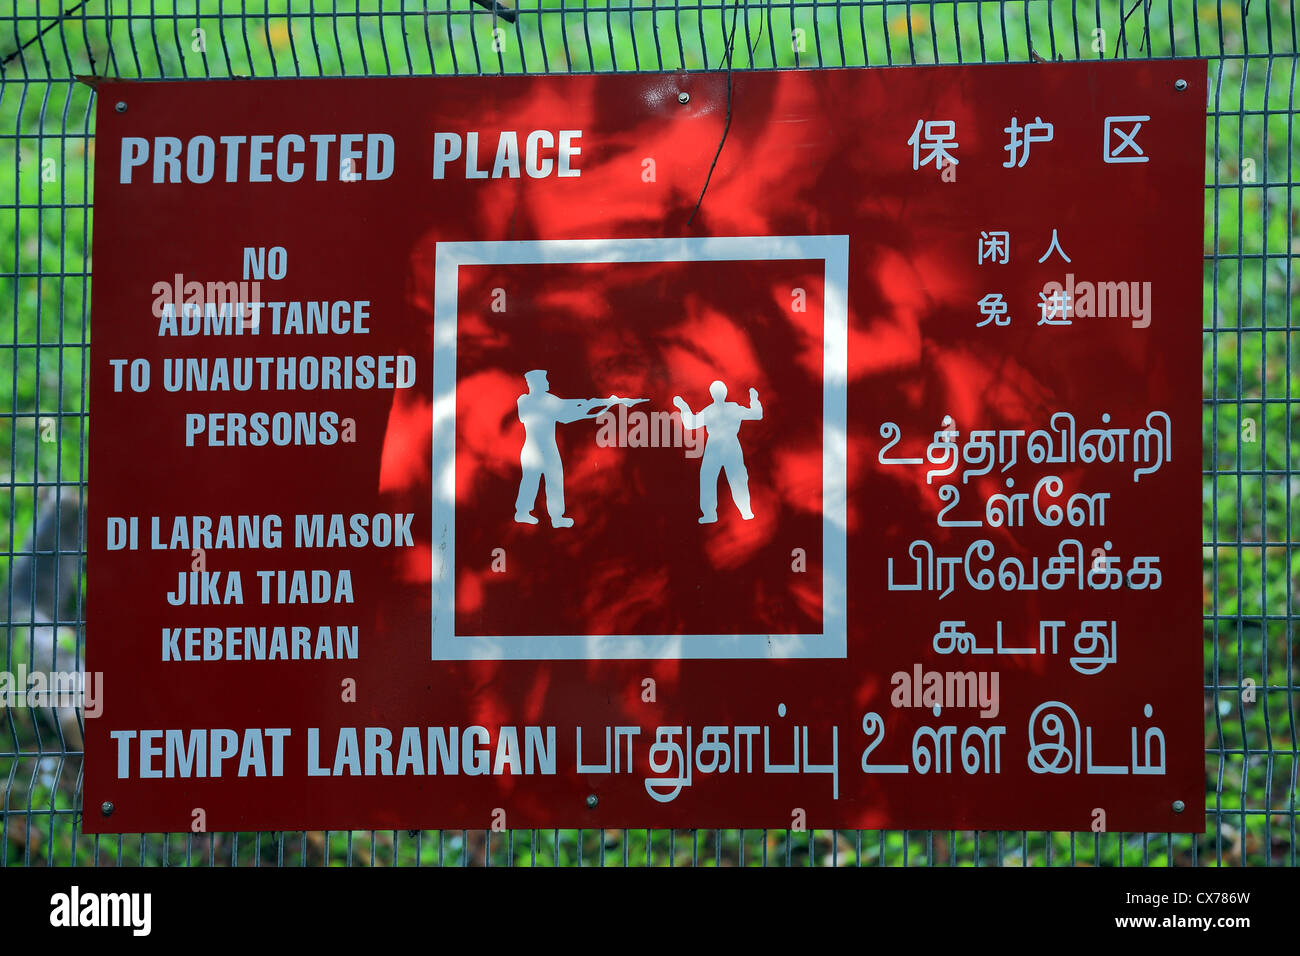 Protected place no admittance to unauthorized persons sign in Fort Canning Park, Singapore - Stock Image